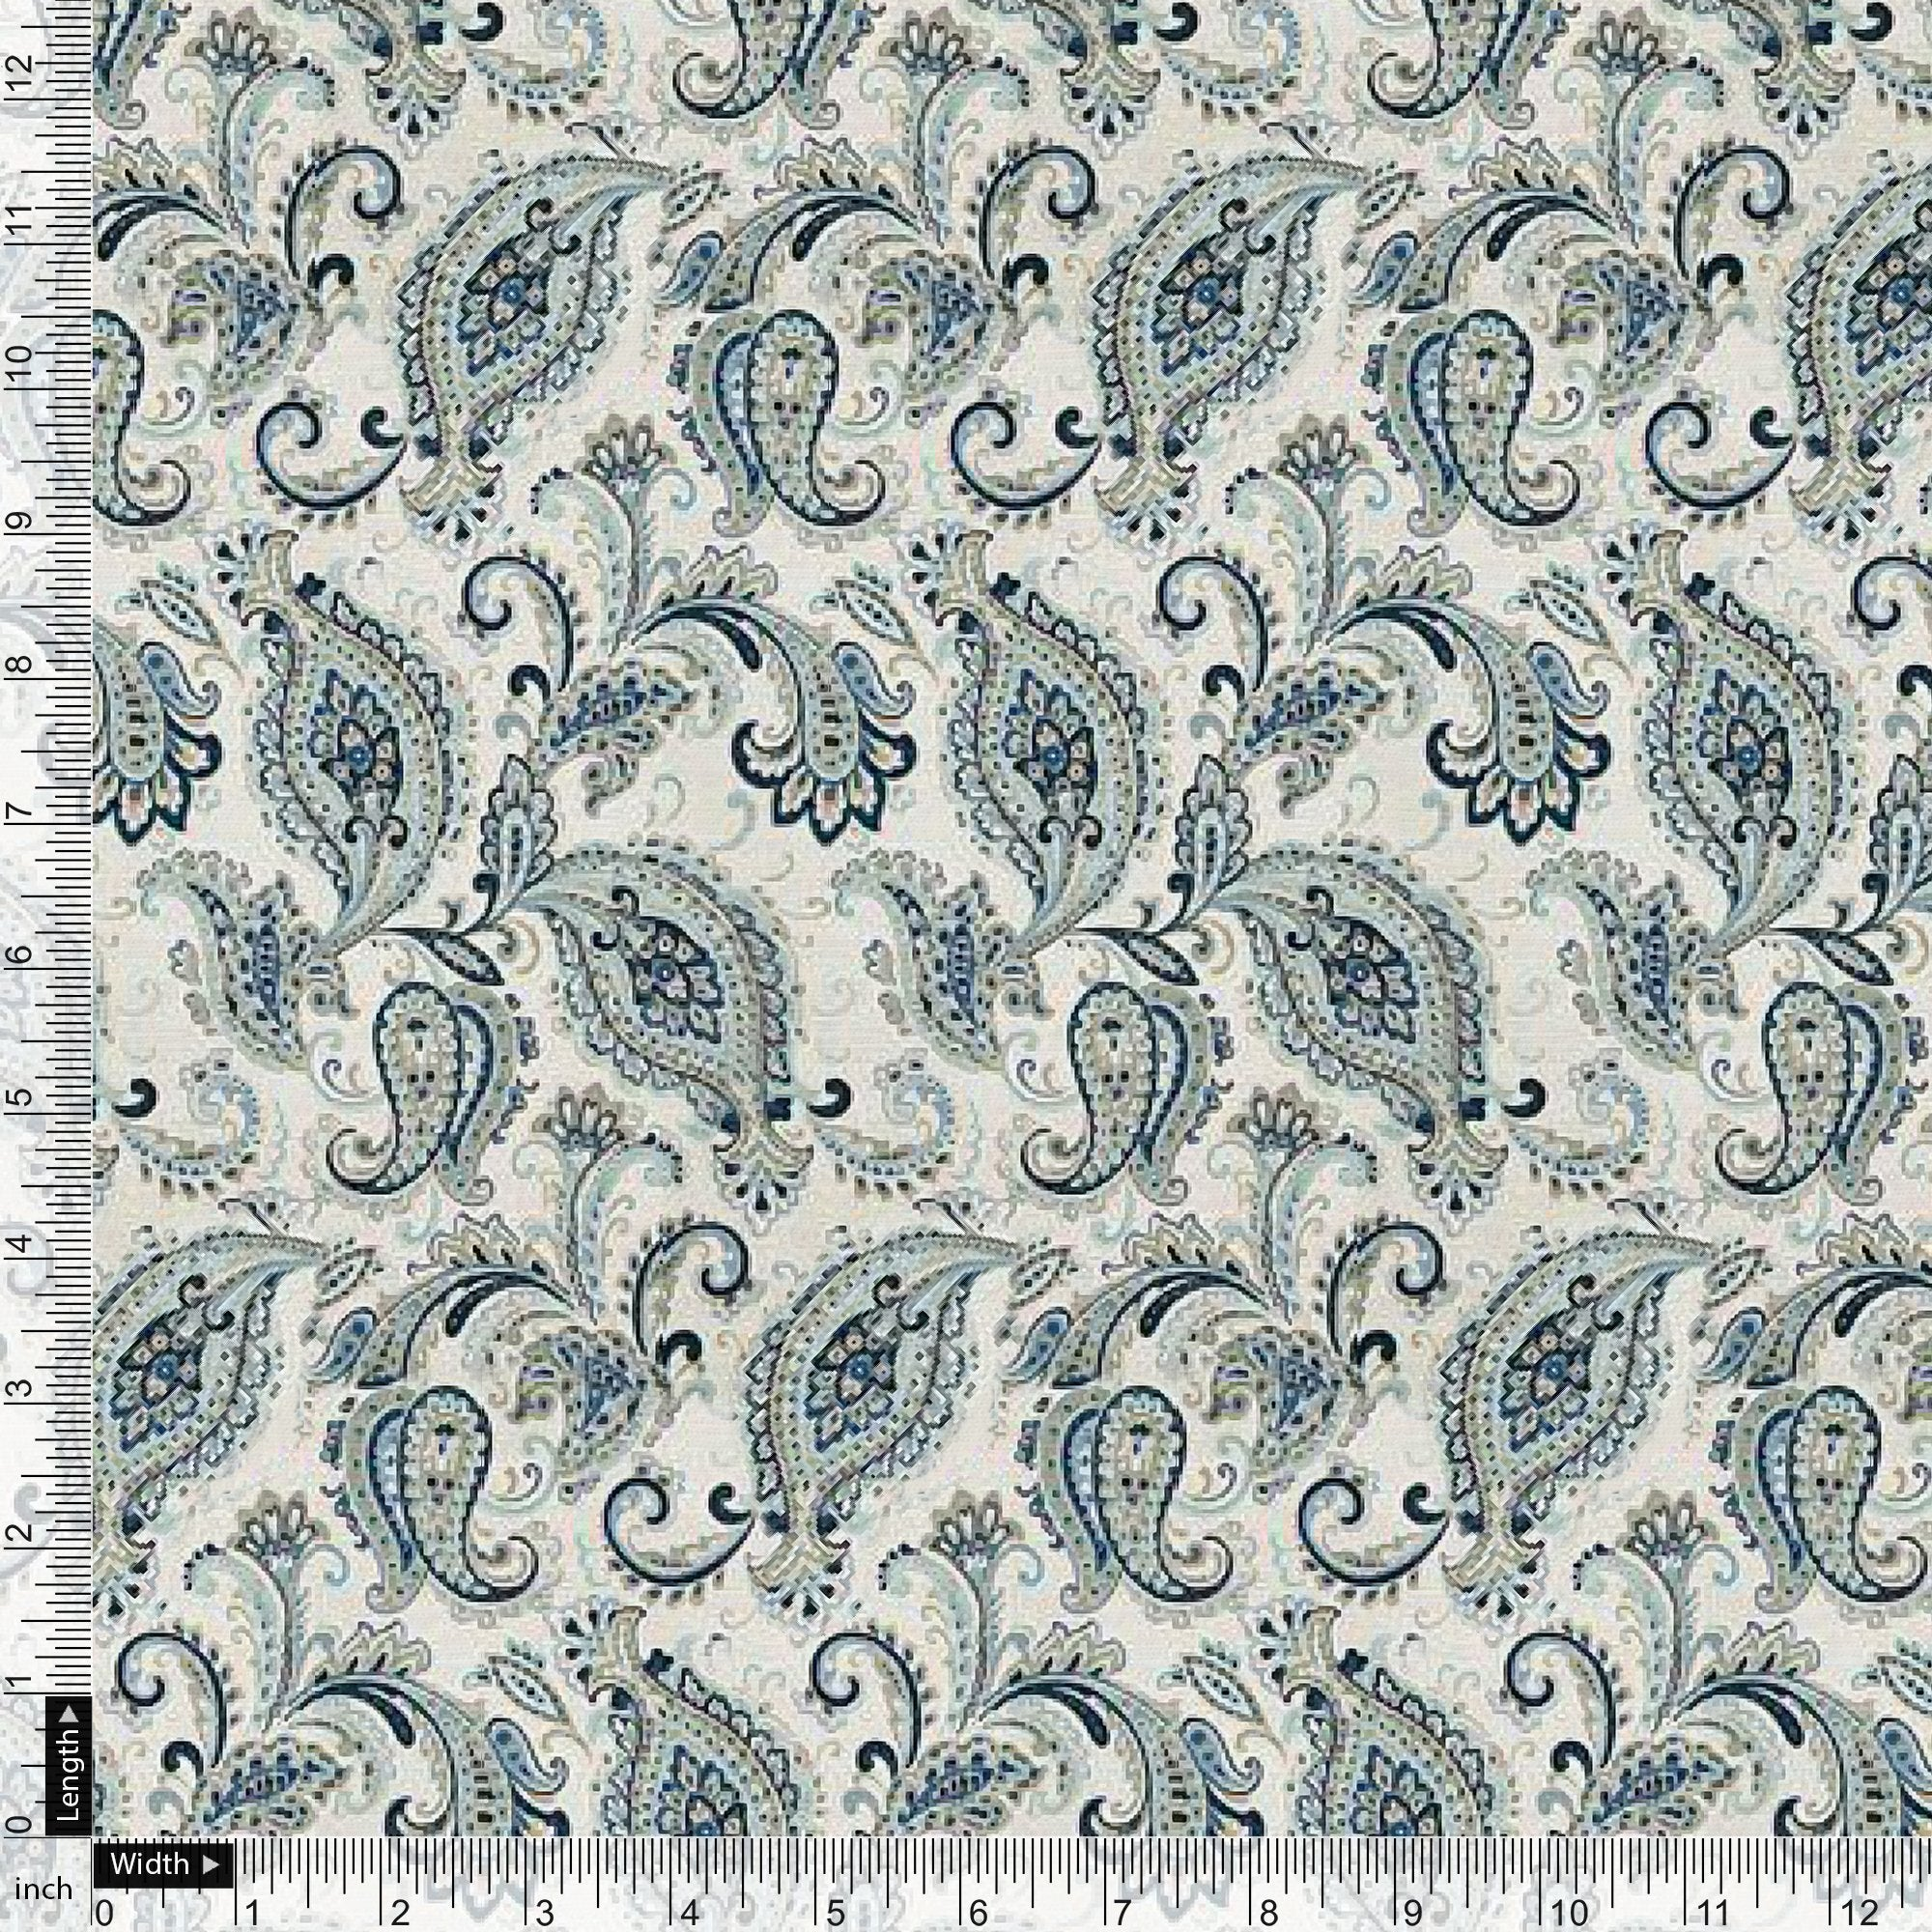 Paisley Seamless Design Digital Printed Fabric - FAB VOGUE Studio. Shop Fabric @ www.fabvoguestudio.com